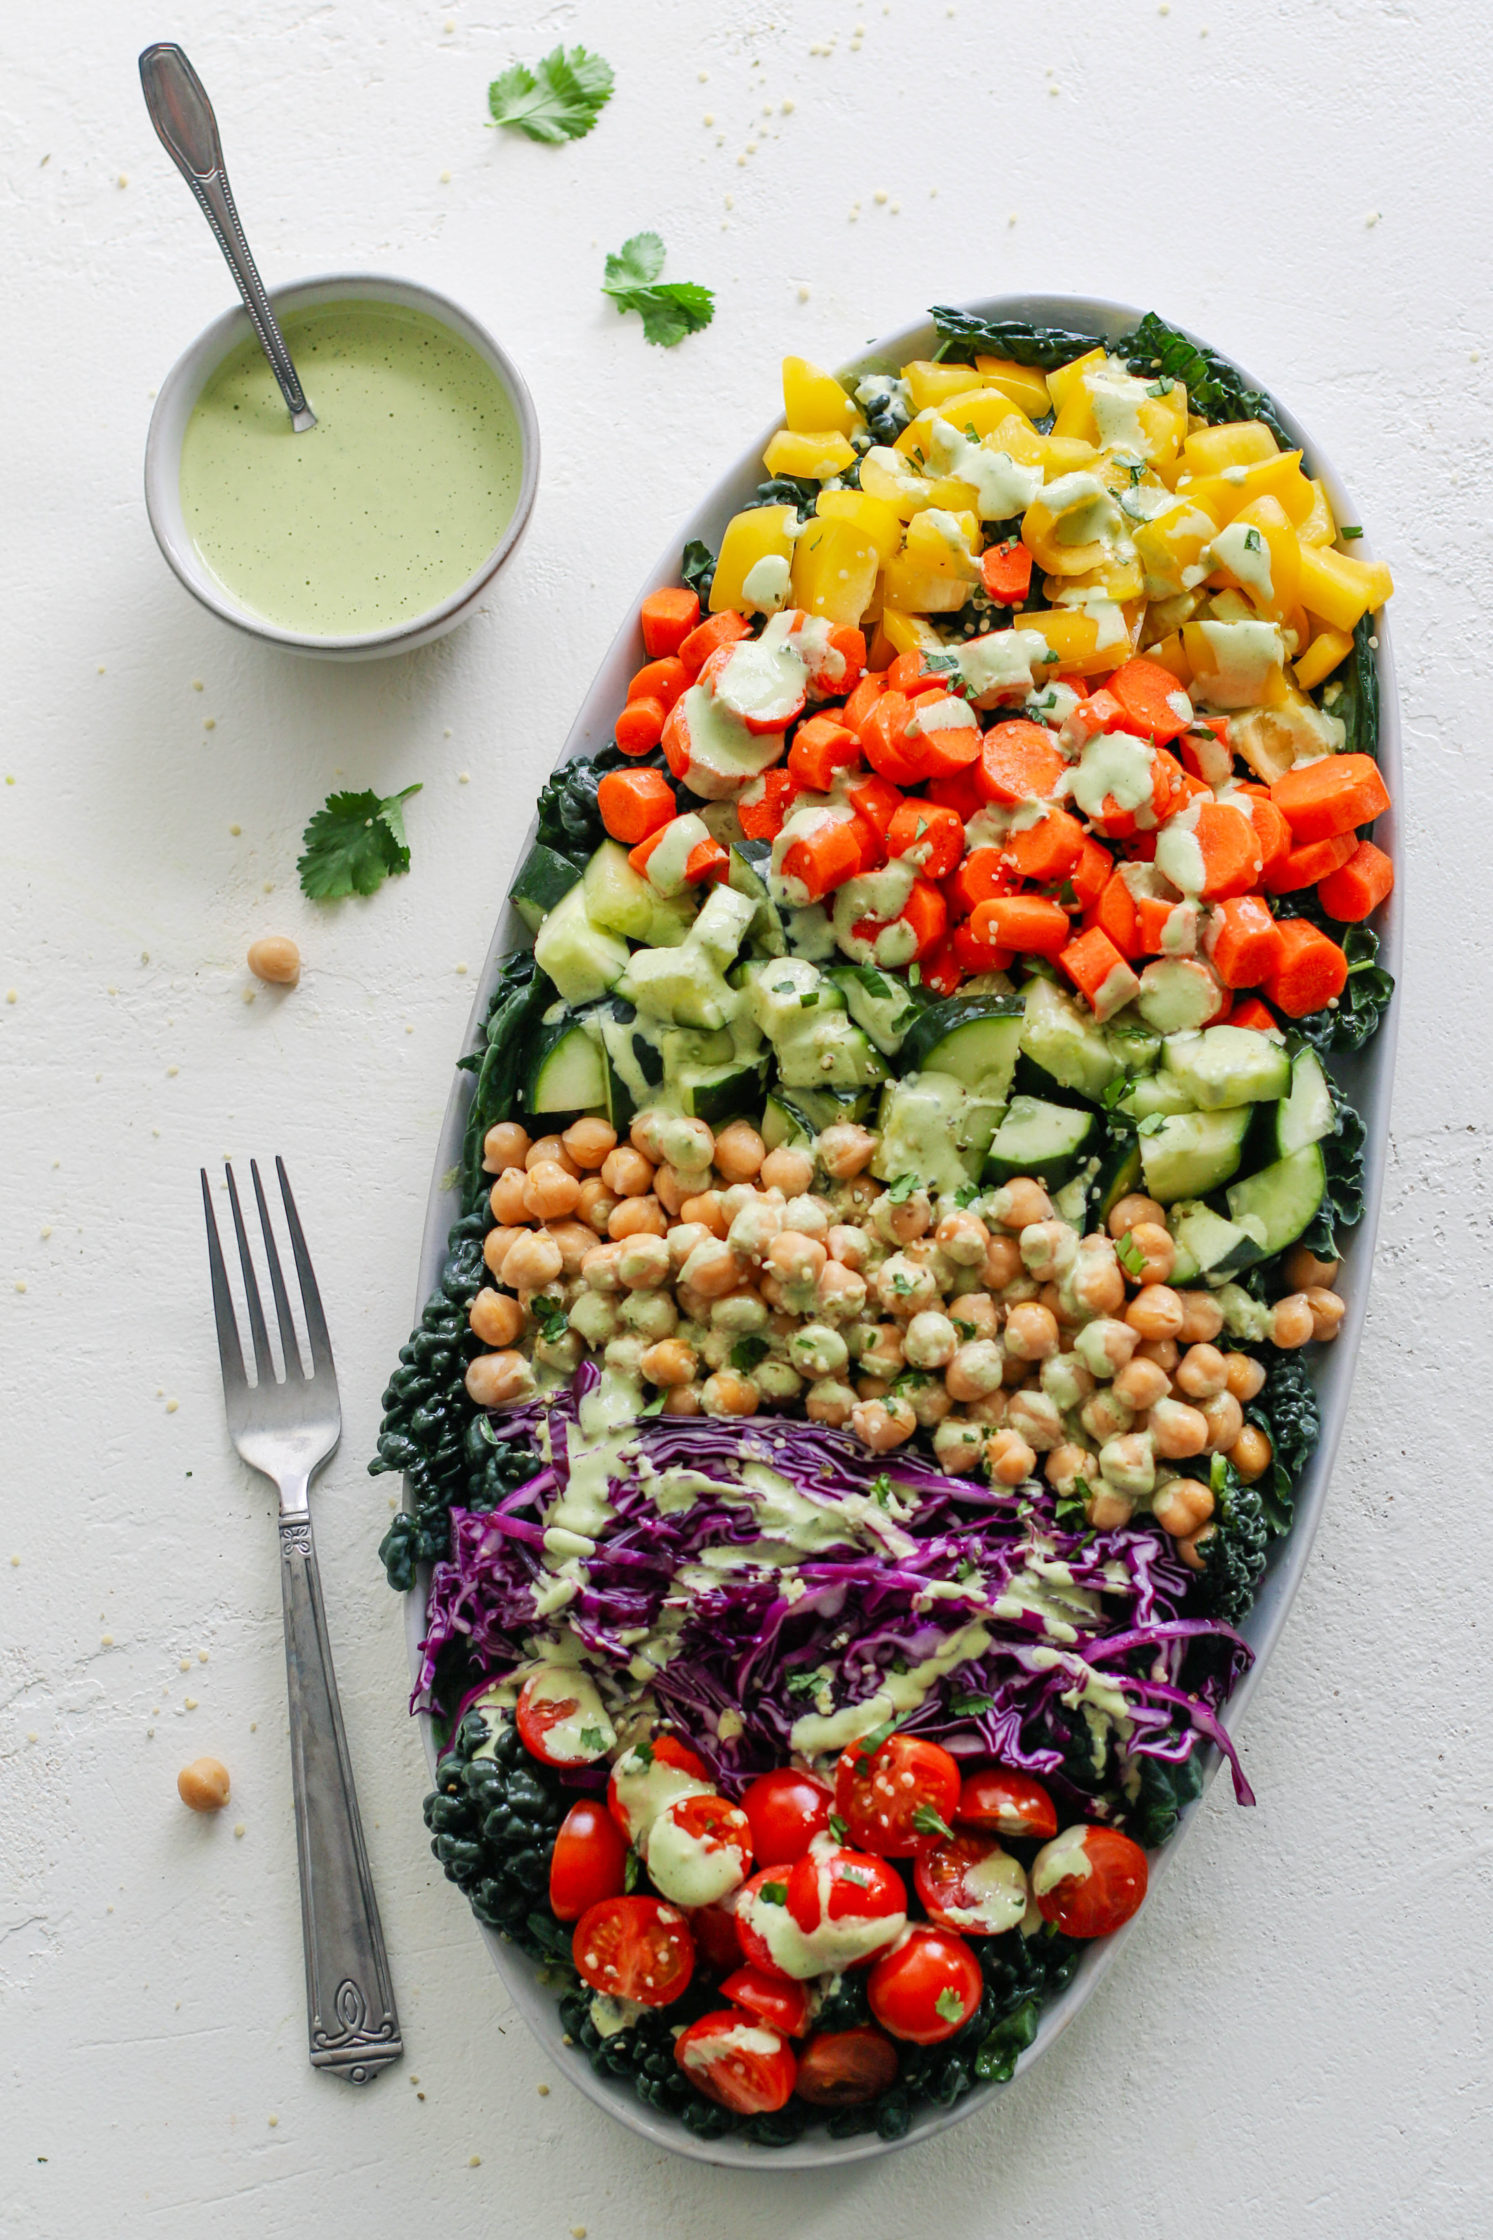 Chop't Chickpea Salad with Green Cilantro Tahini by Flora & Vino